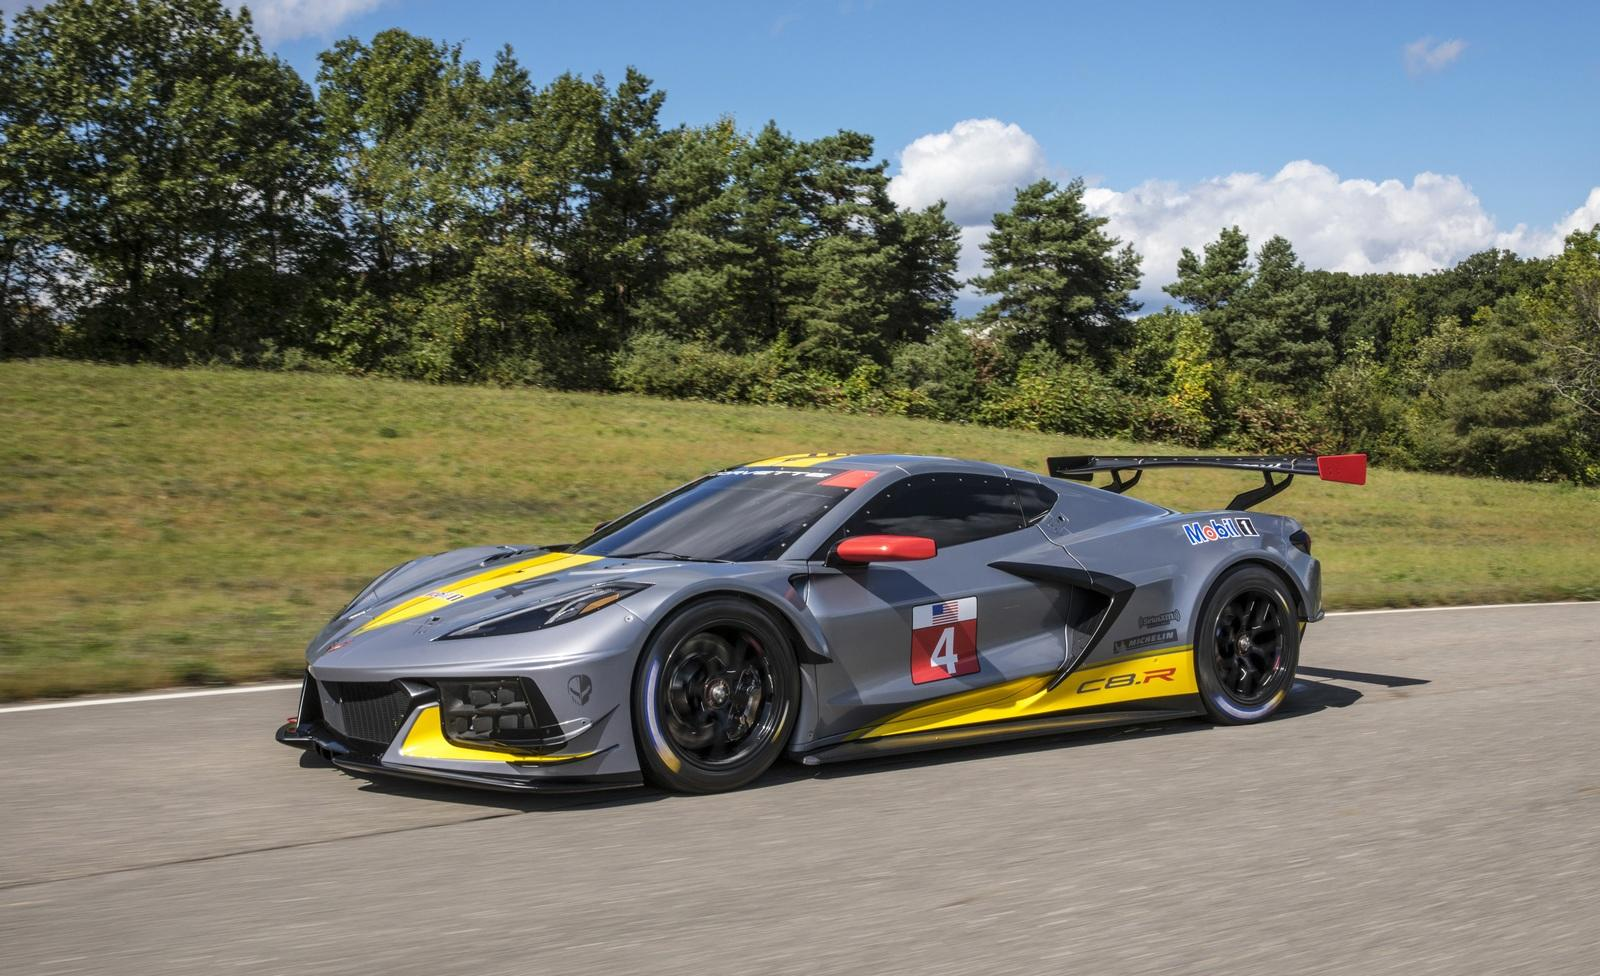 Chevrolet C8 Corvette C8R Picture Gallery Pictures, Photos ...